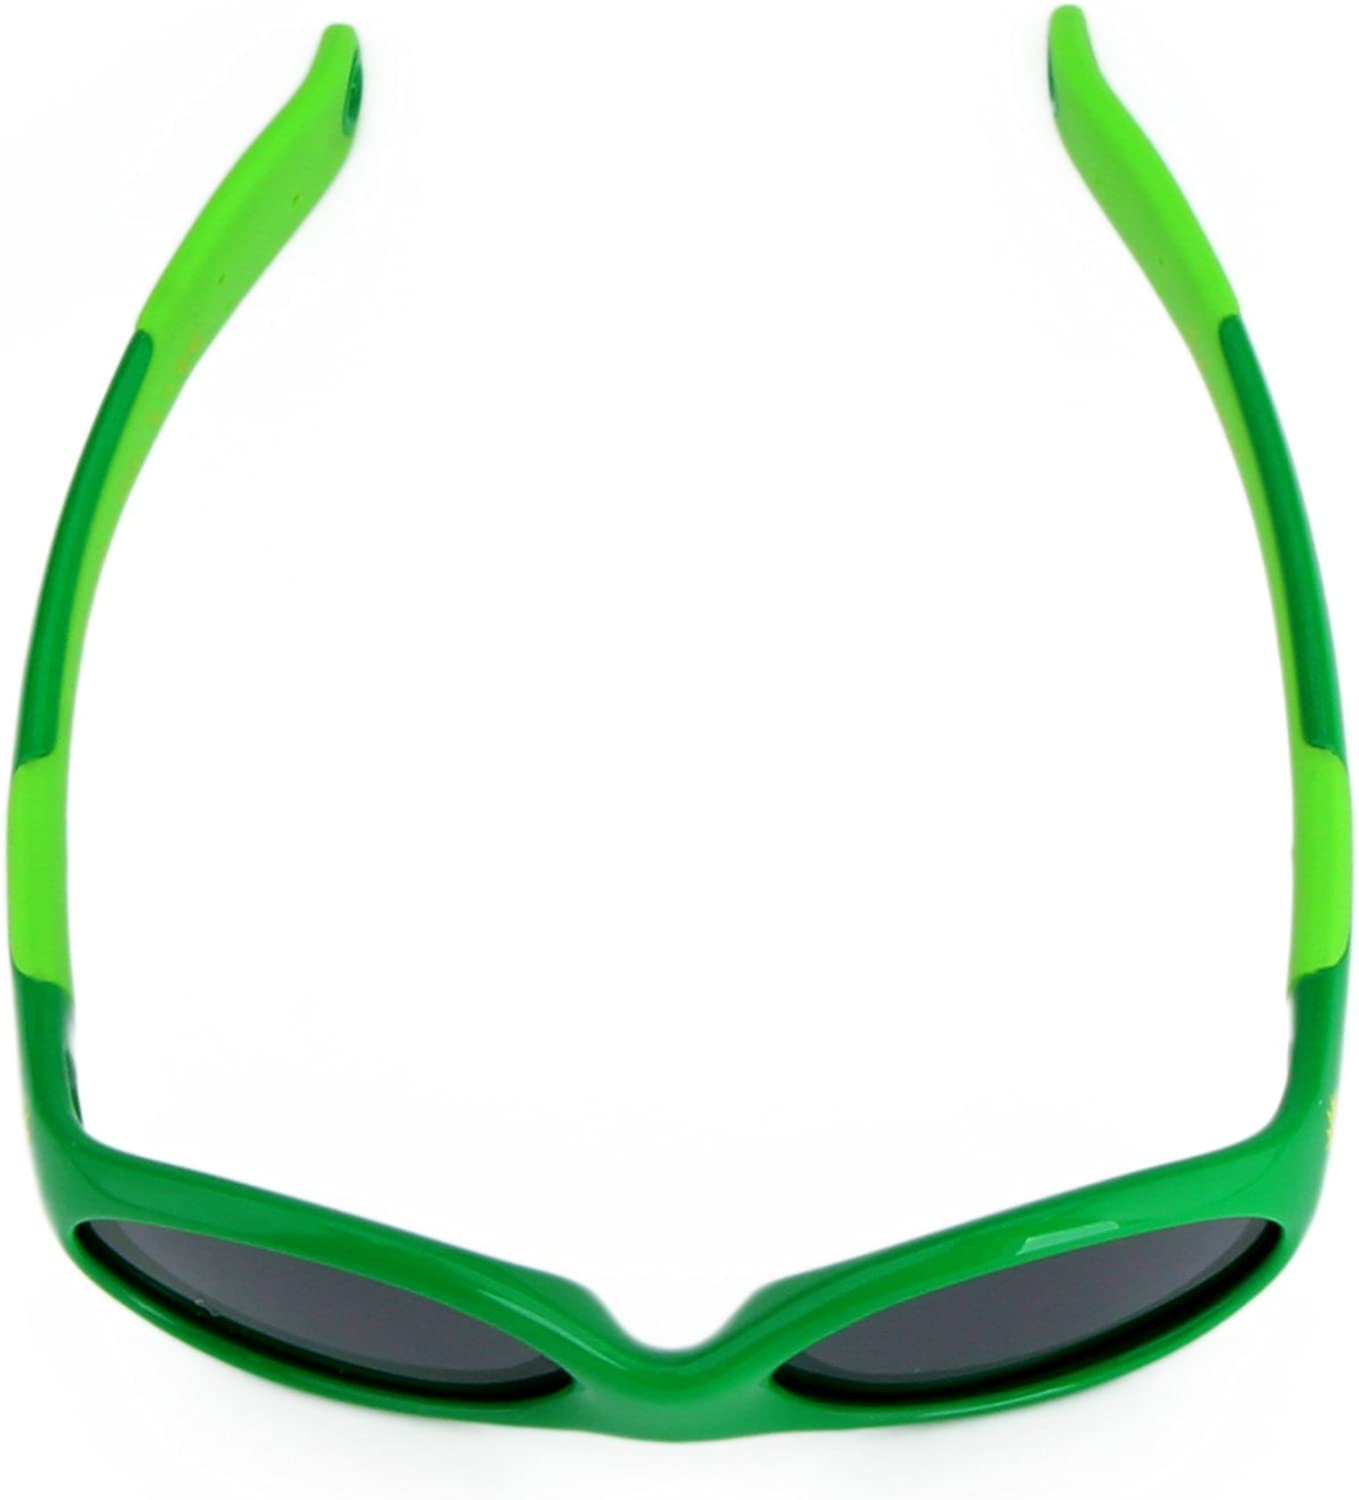 18 grams indestructible polarised BOYS | 0-2 years Active Sol BABY Sunglasses 100/% UV 400 protection christmas present made of flexible rubber